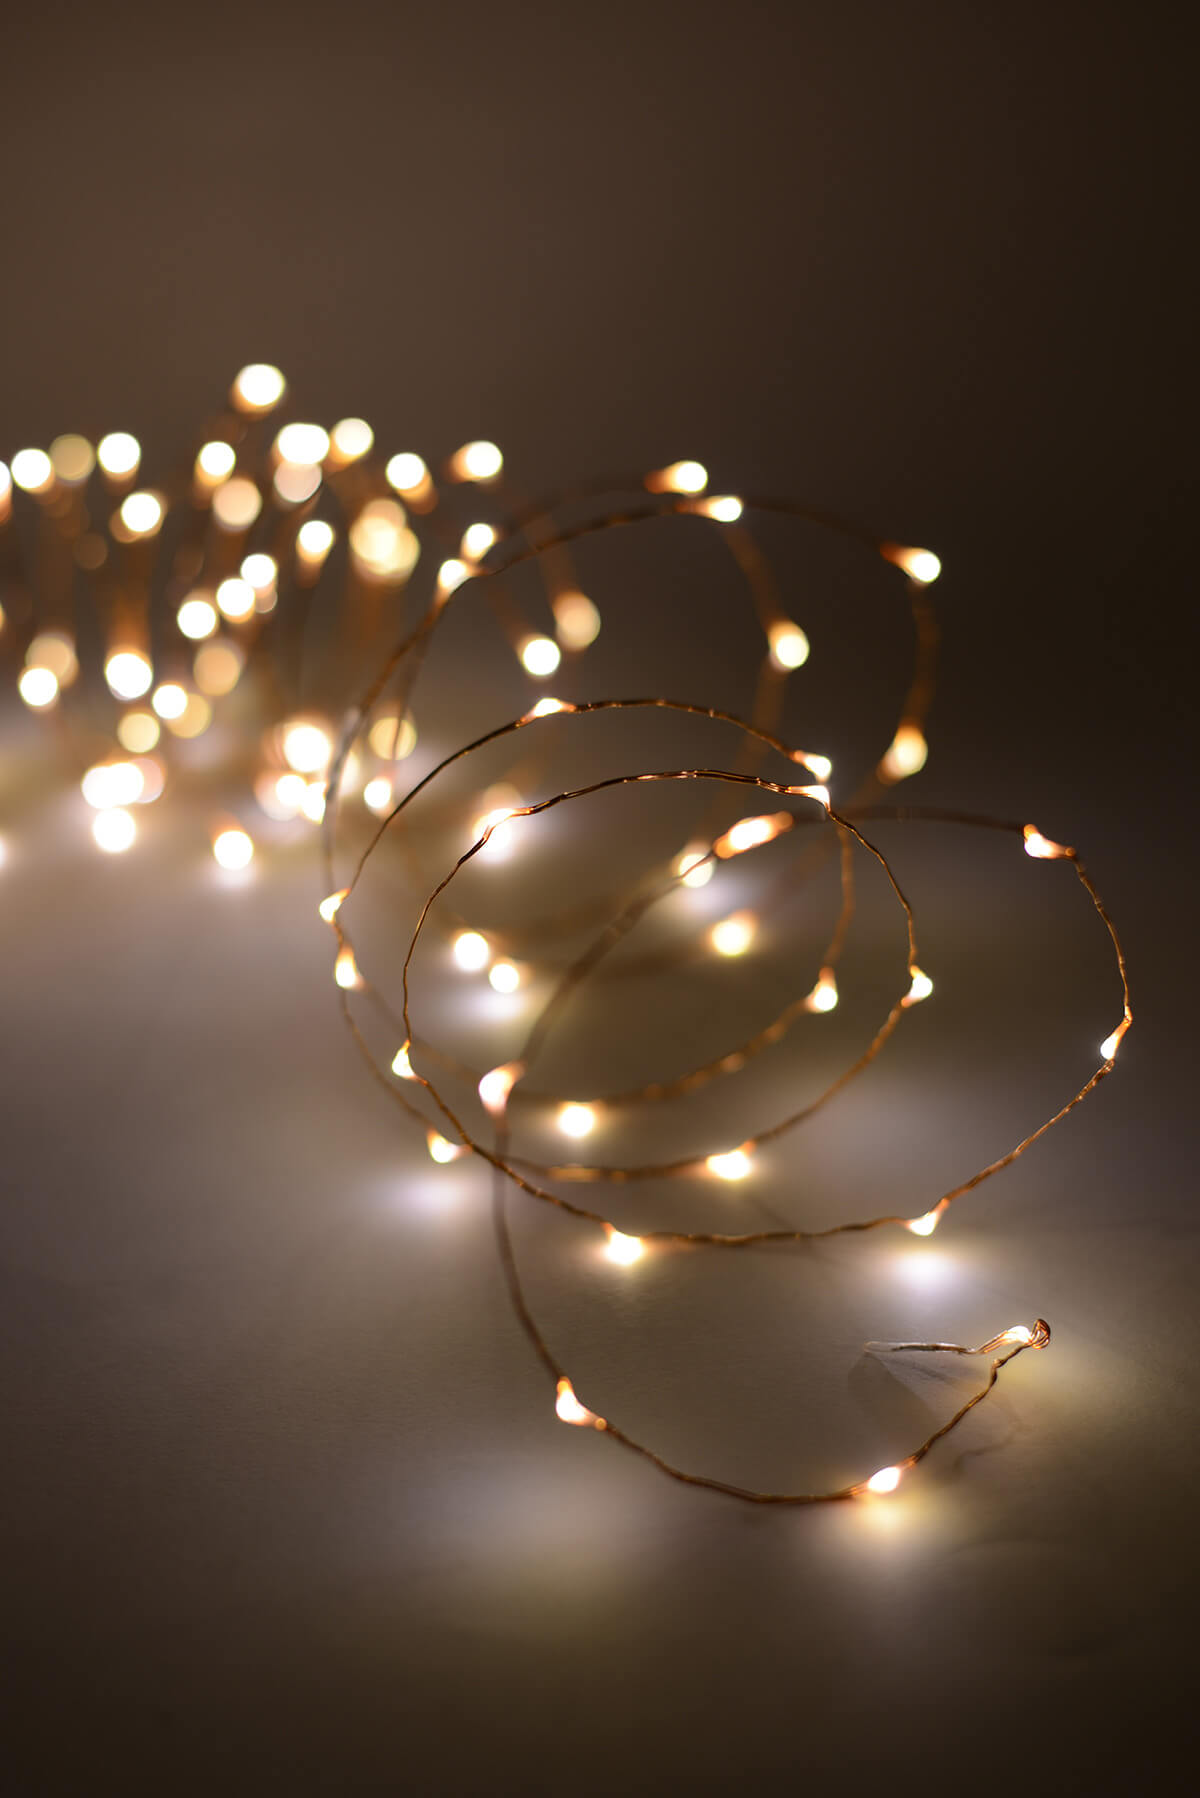 Homemade Flower Pots Led 20 Feet Fairy Lights Copper Wire With 120ct Warm White